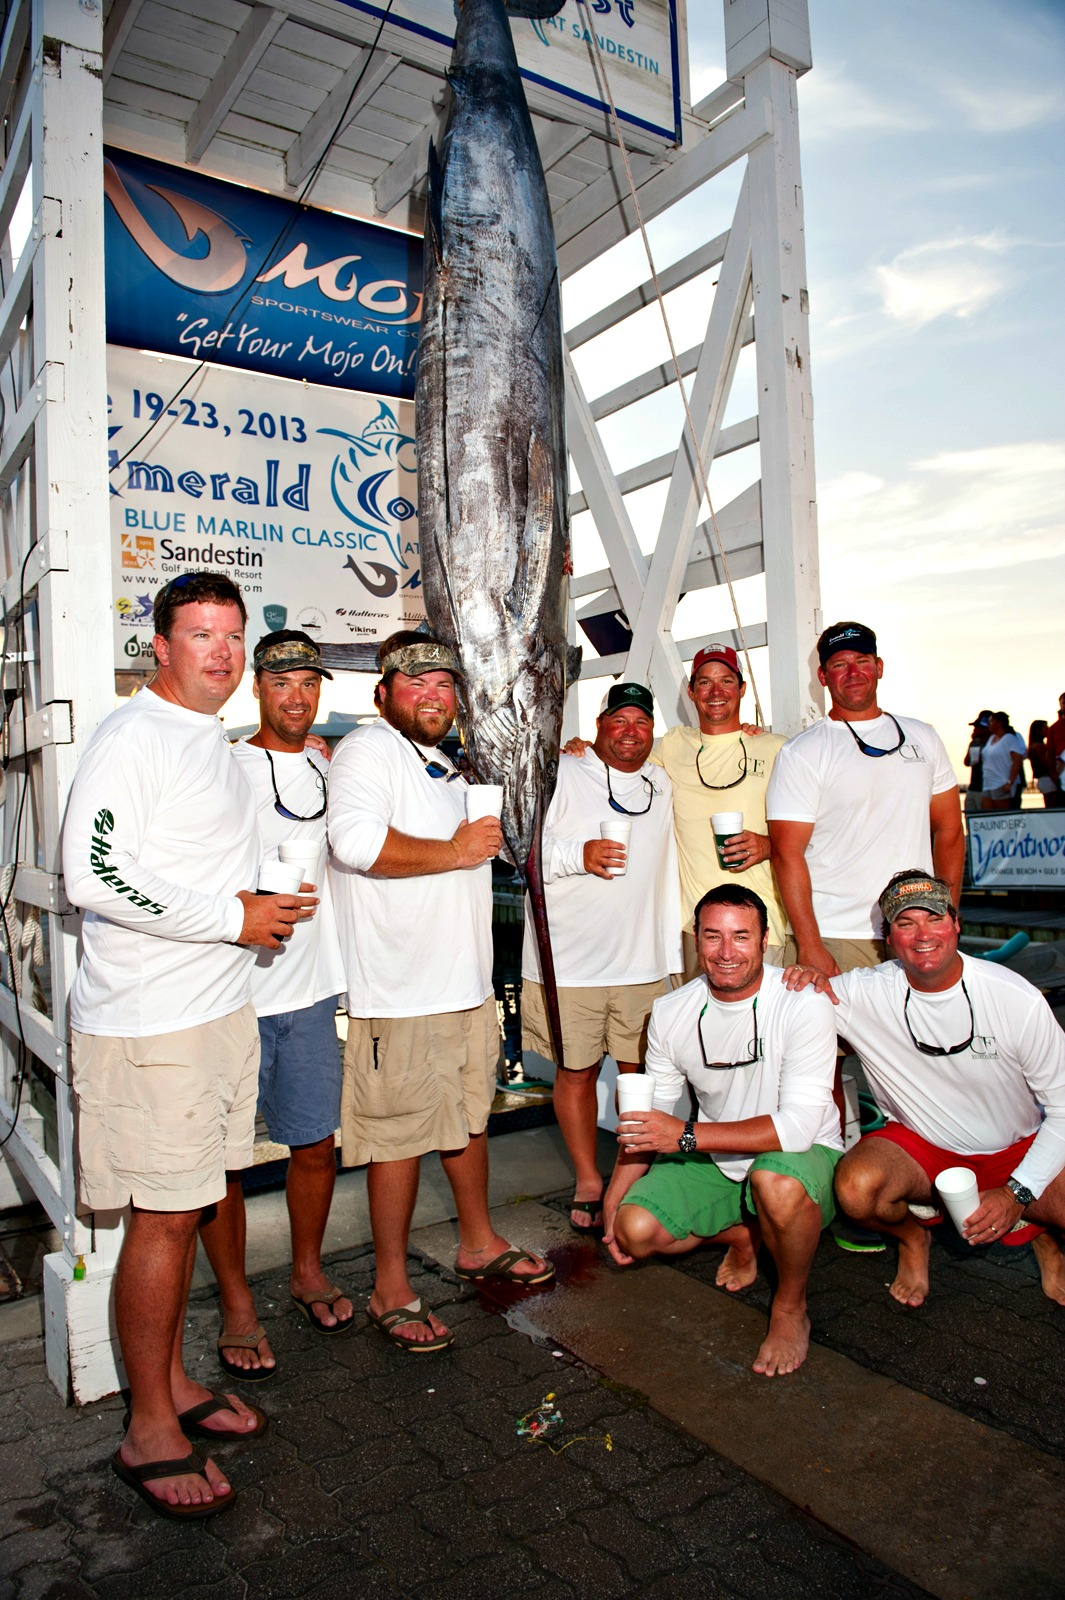 Blue Marlin Classic at Baytowne Marina